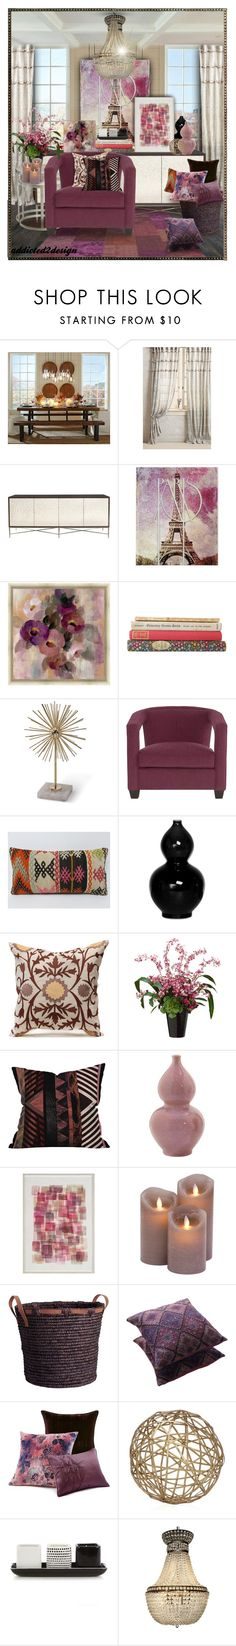 """""""..still Talking"""" by addicted2design ❤ liked on Polyvore featuring interior, interiors, interior design, home, home decor, interior decorating, Pottery Barn, Adagio, Bernhardt and Emissary"""